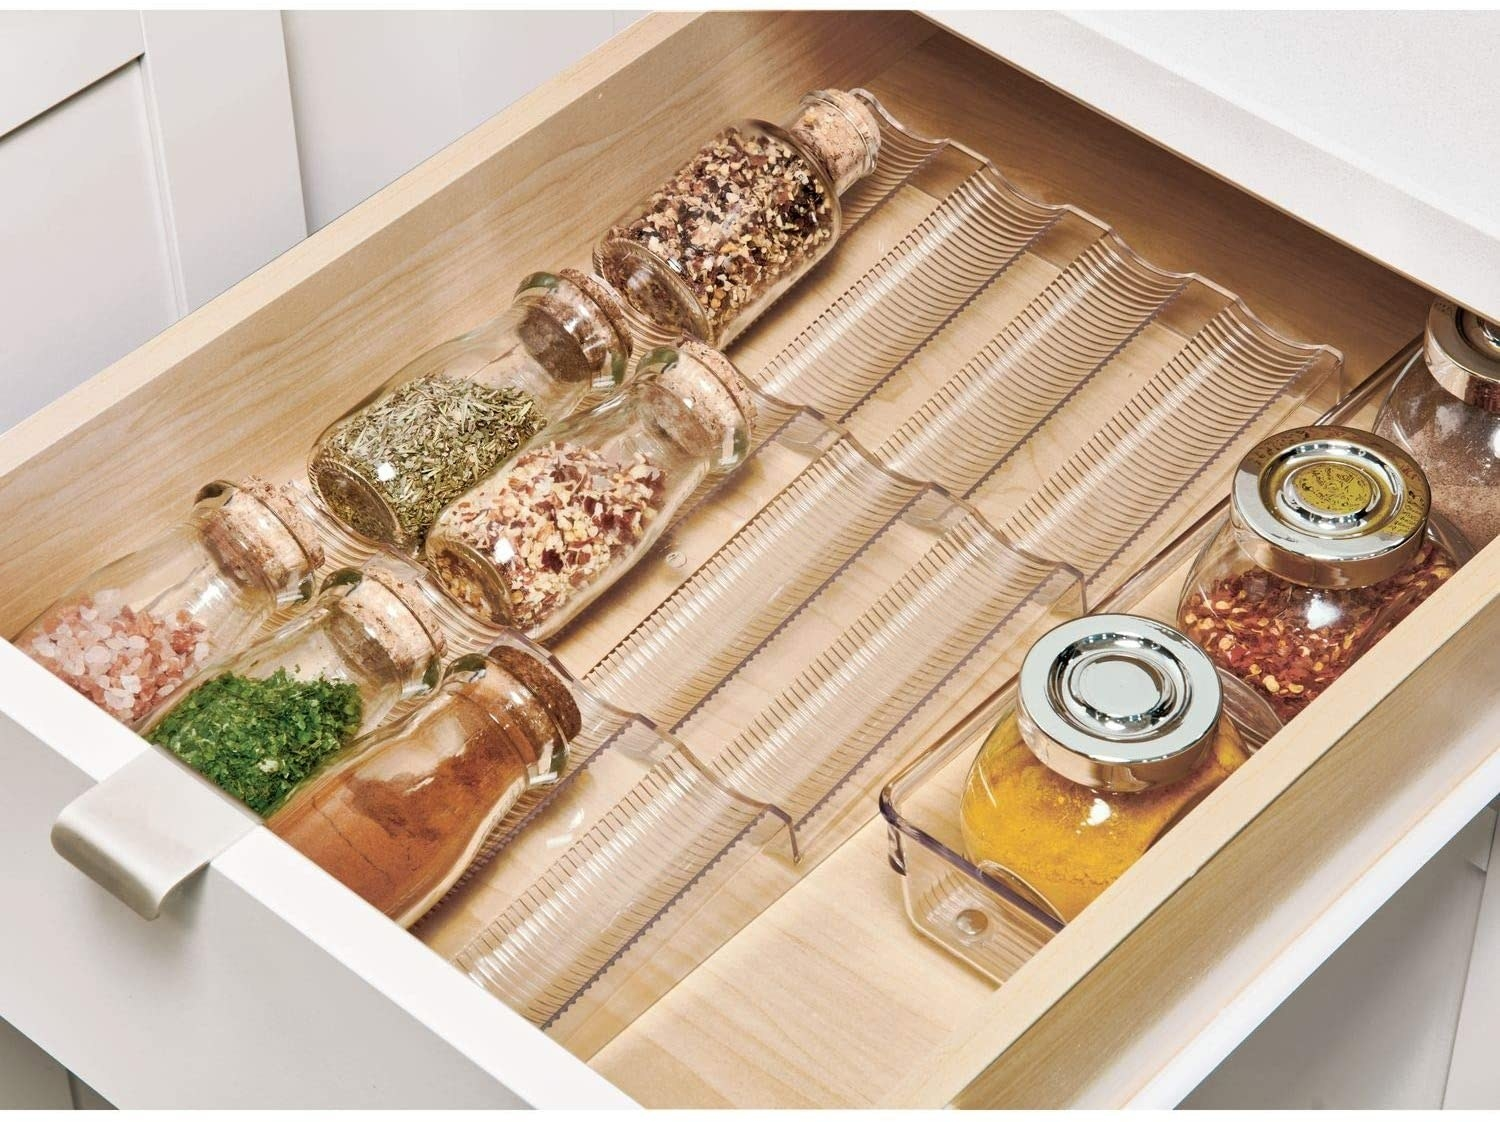 A kitchen drawer with spice bottles organized into rows